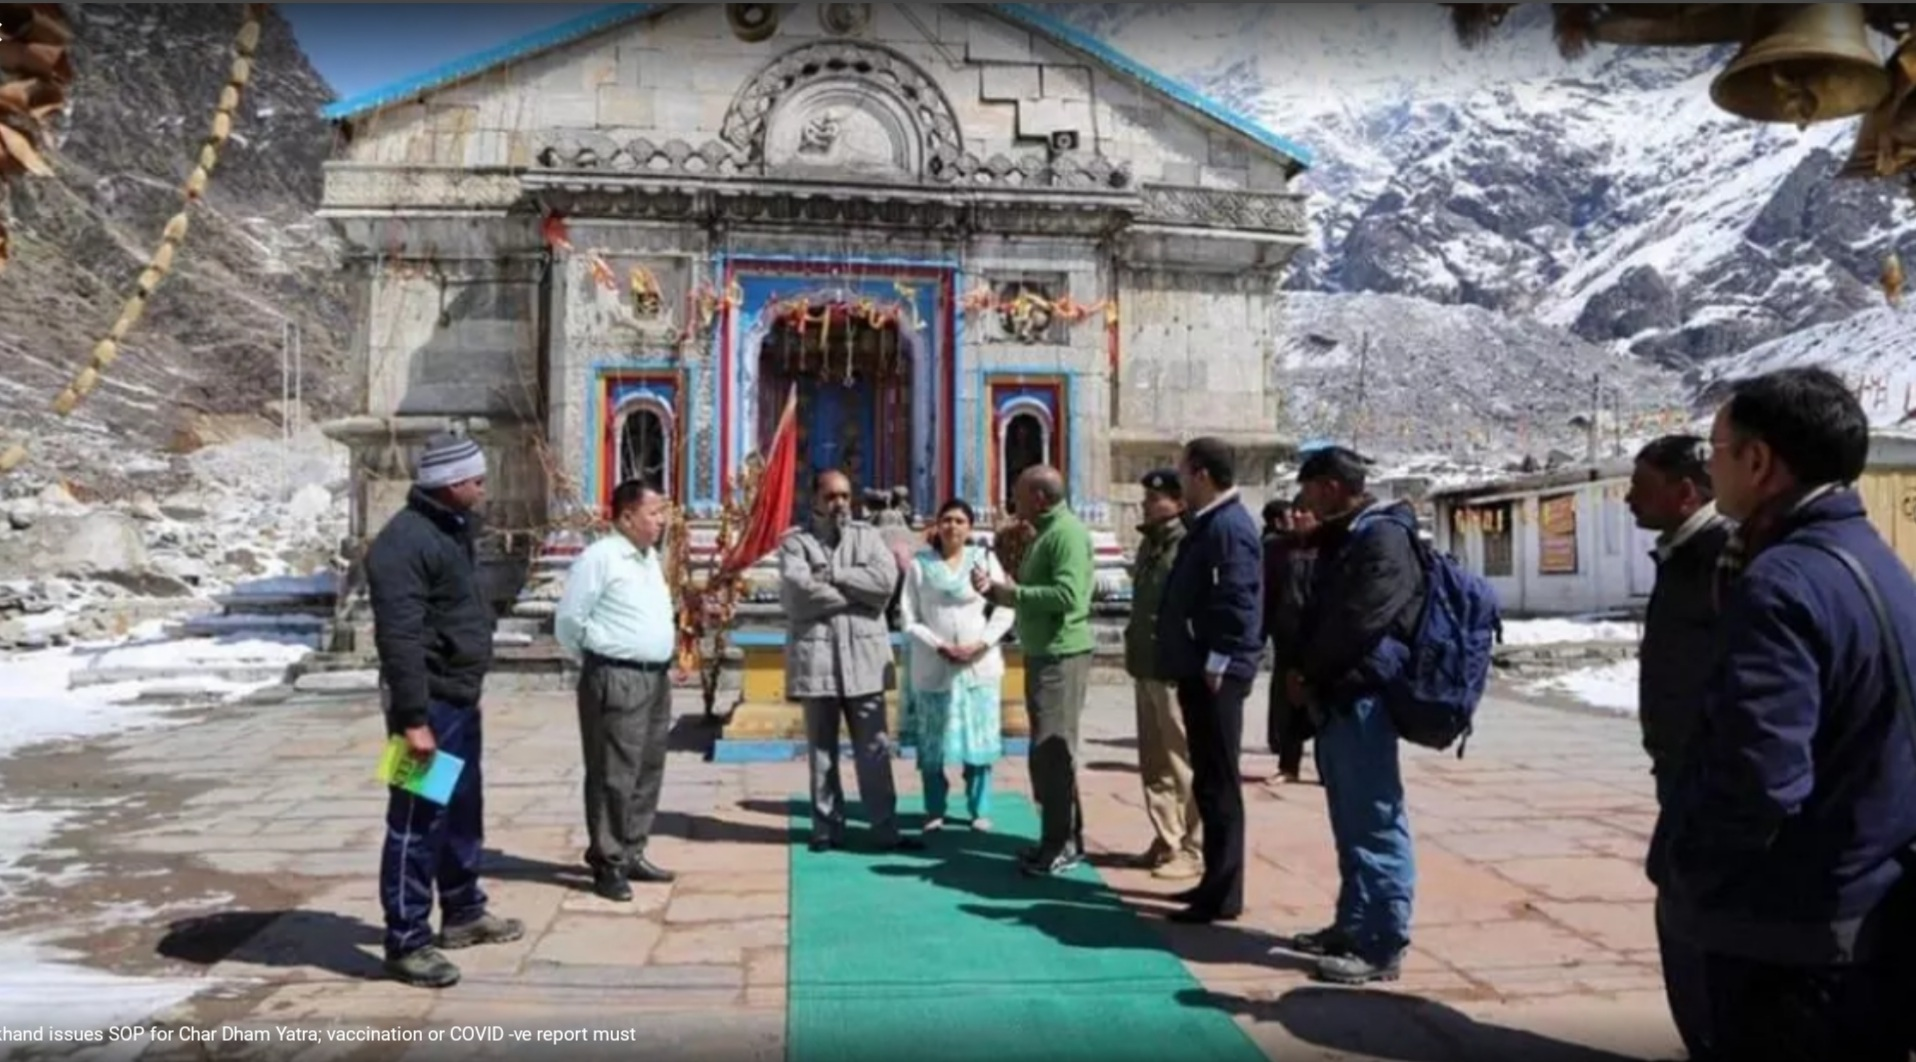 U'khand issues SOP for Char Dham Yatra; vaccination or COVID -ve report must